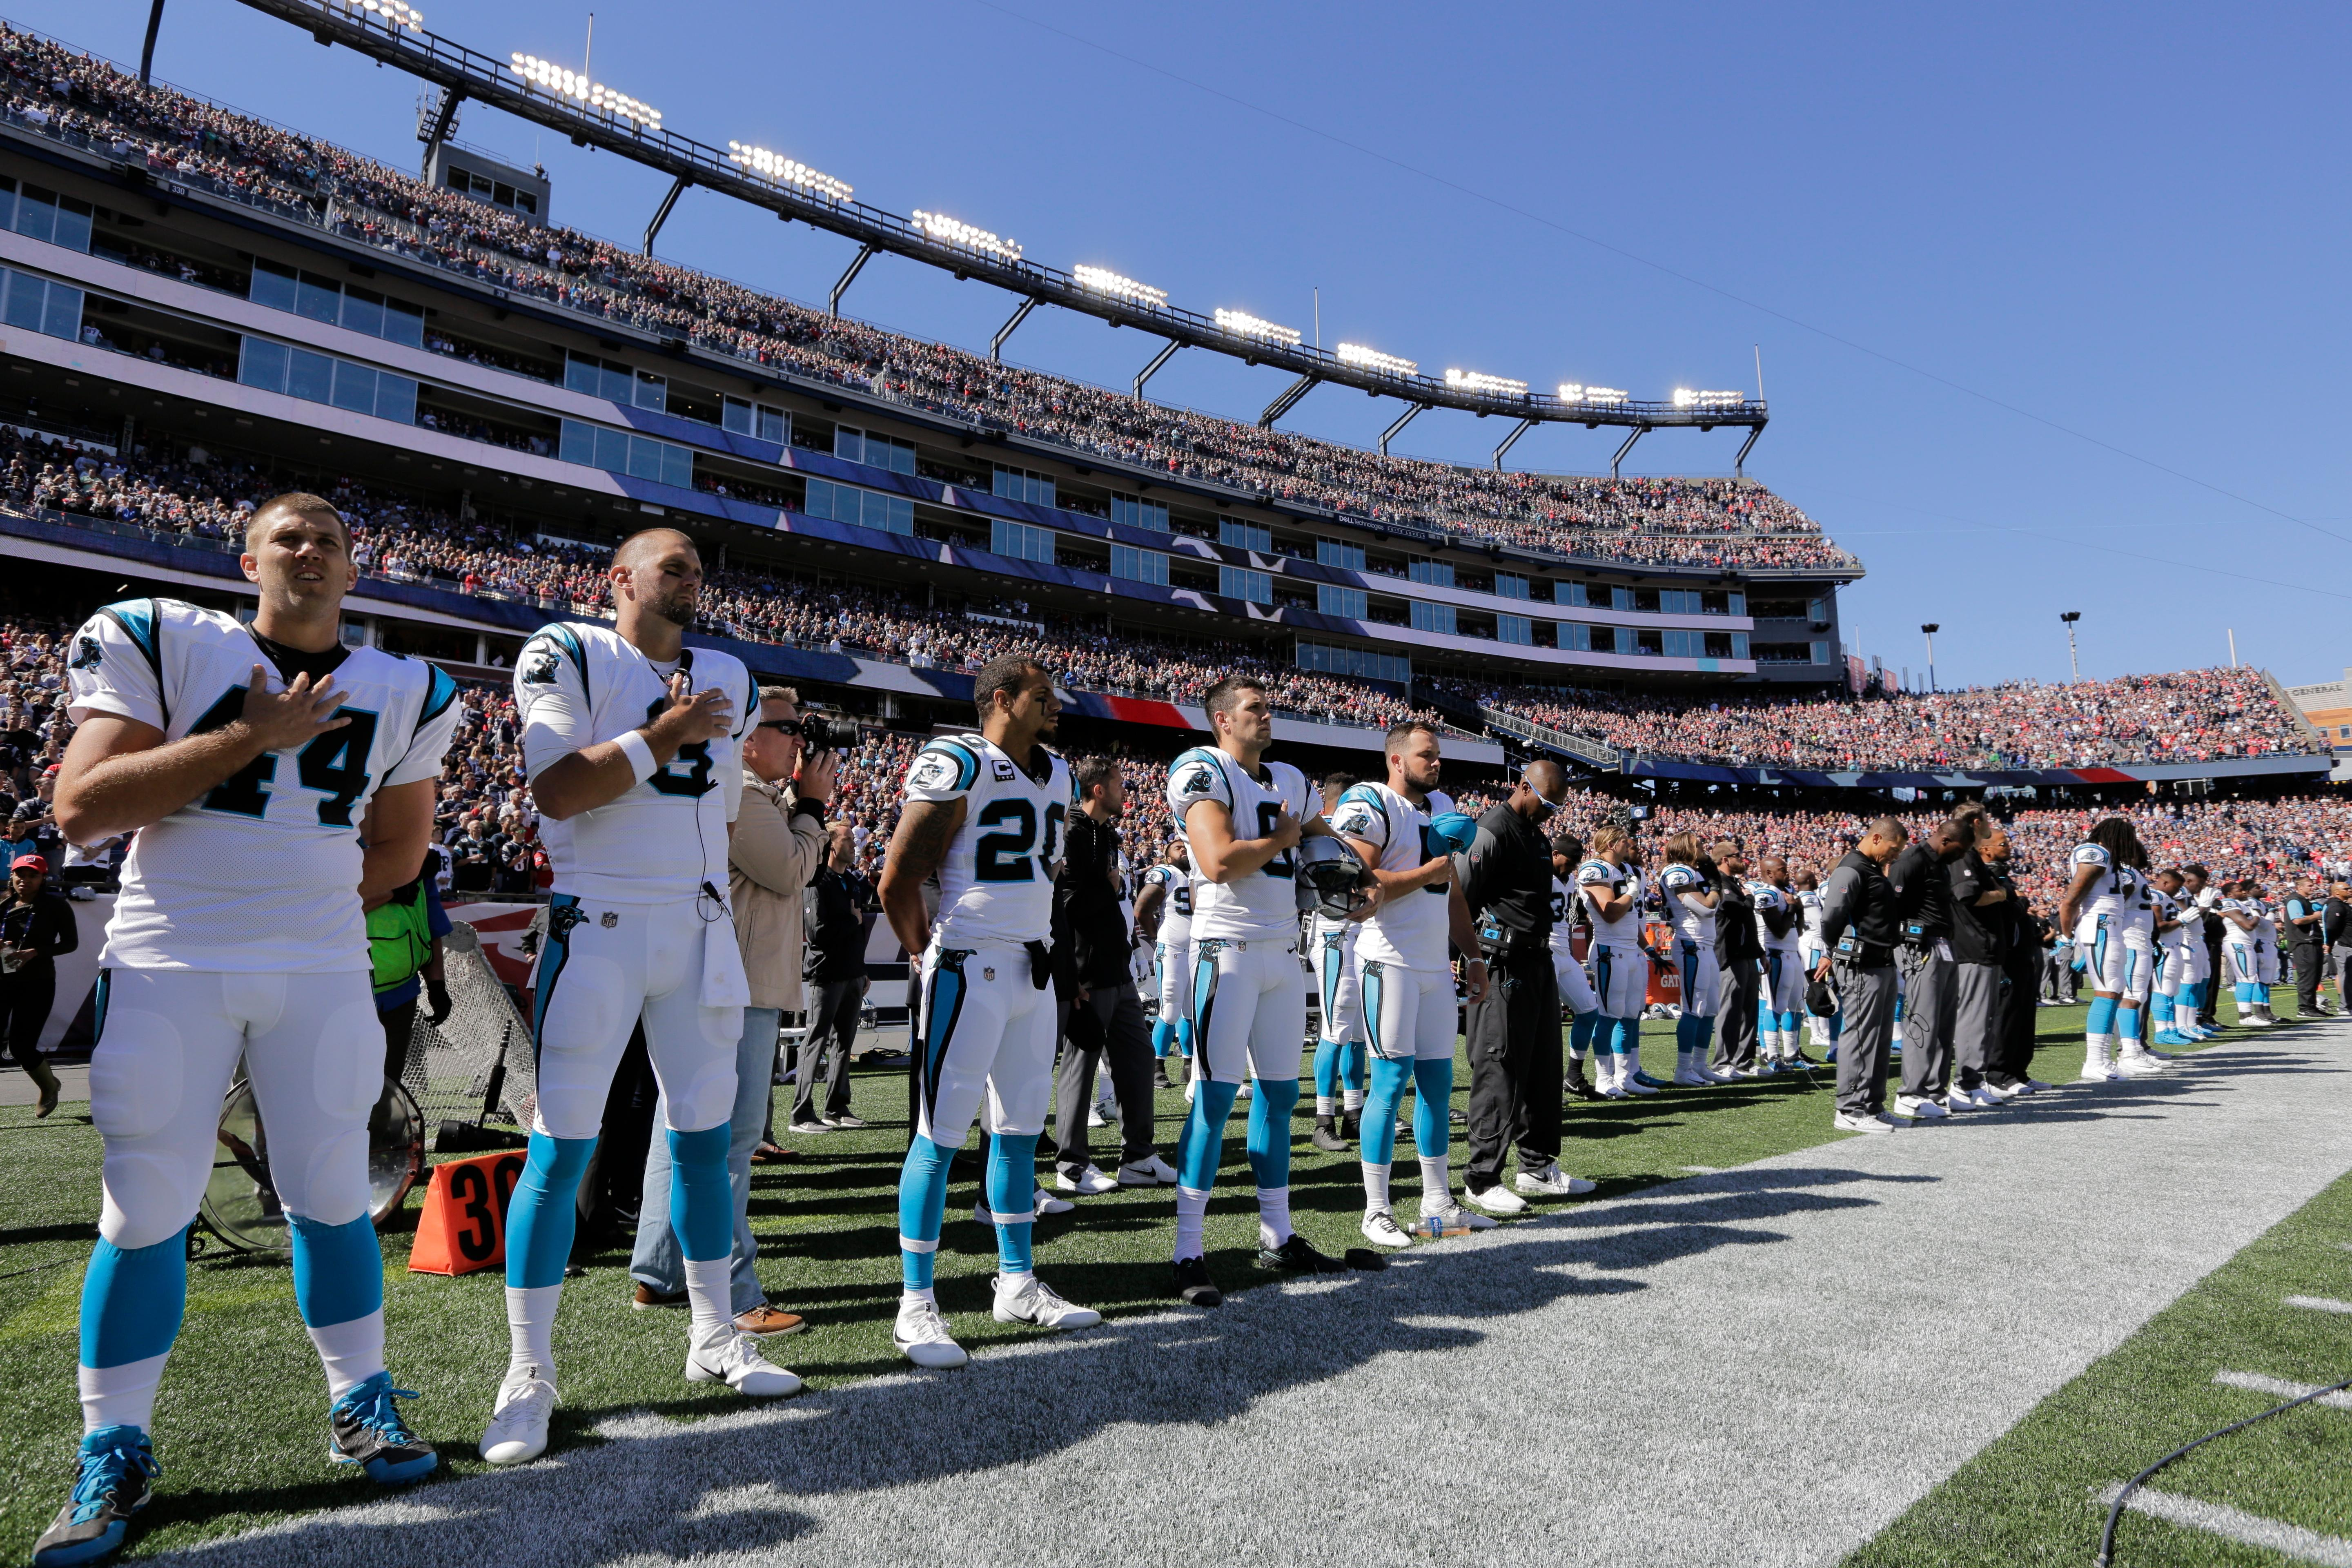 Members of the Carolina Panthers stand along the sideline during the national anthem before an NFL football game against the New England Patriots, Sunday, Oct. 1, 2017, in Foxborough, Mass. (AP Photo/Steven Senne)